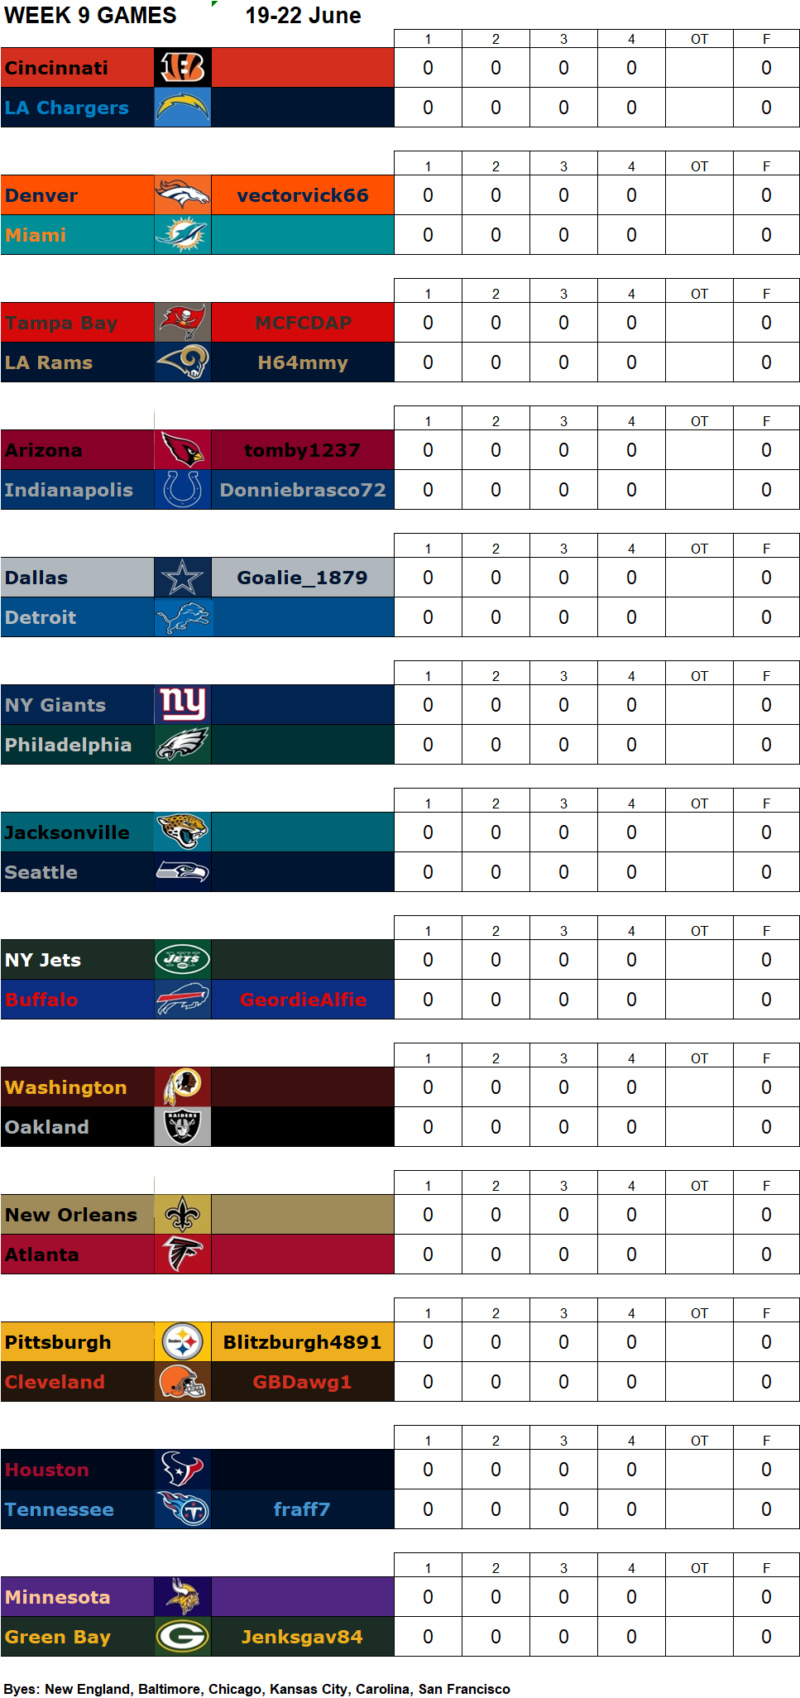 Week 9 Matchups, 19-22 June W9g15